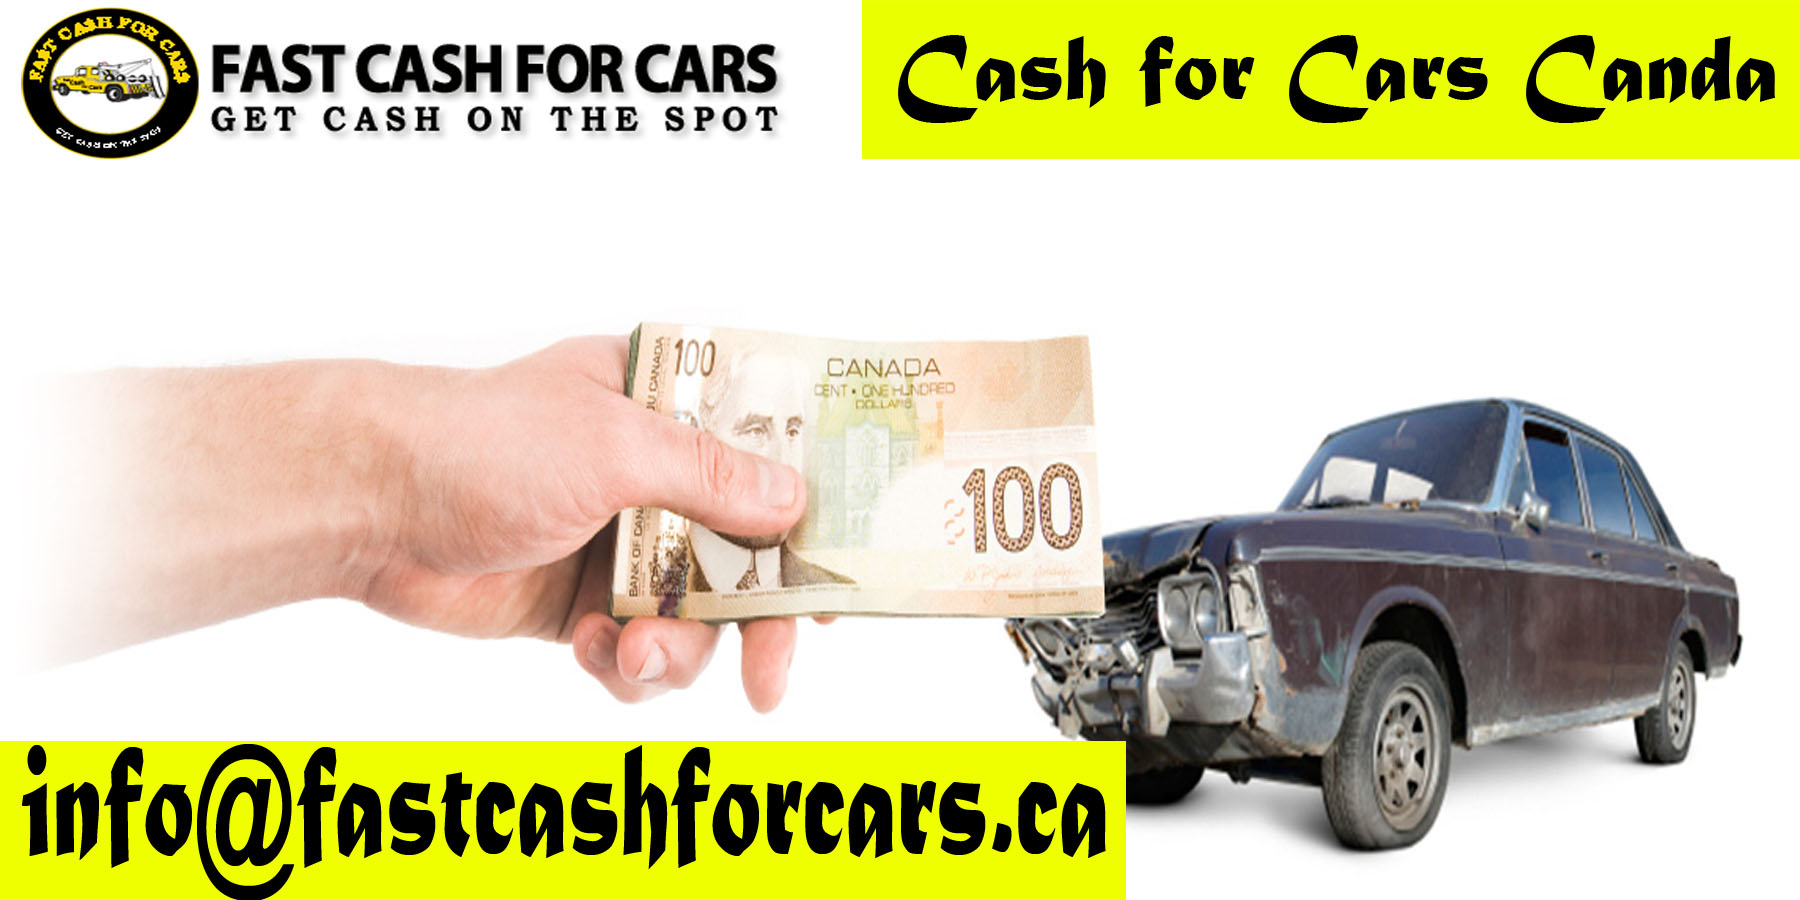 How to make a lot of money fast canada